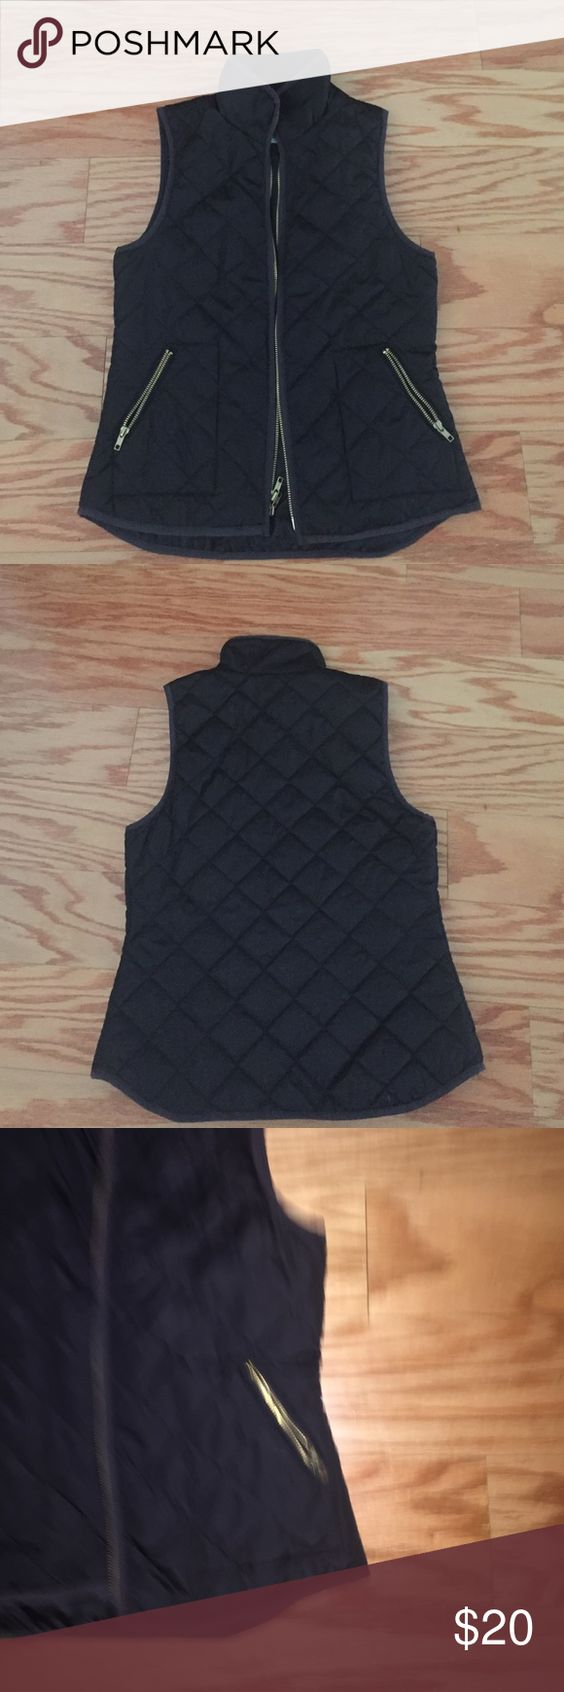 Old Navy Black Thin Puffer Vest Size XS Old Navy Thin Black Puffer Vest Size XS; Gold Zippers with 2 side pockets Old Navy Jackets & Coats Puffers